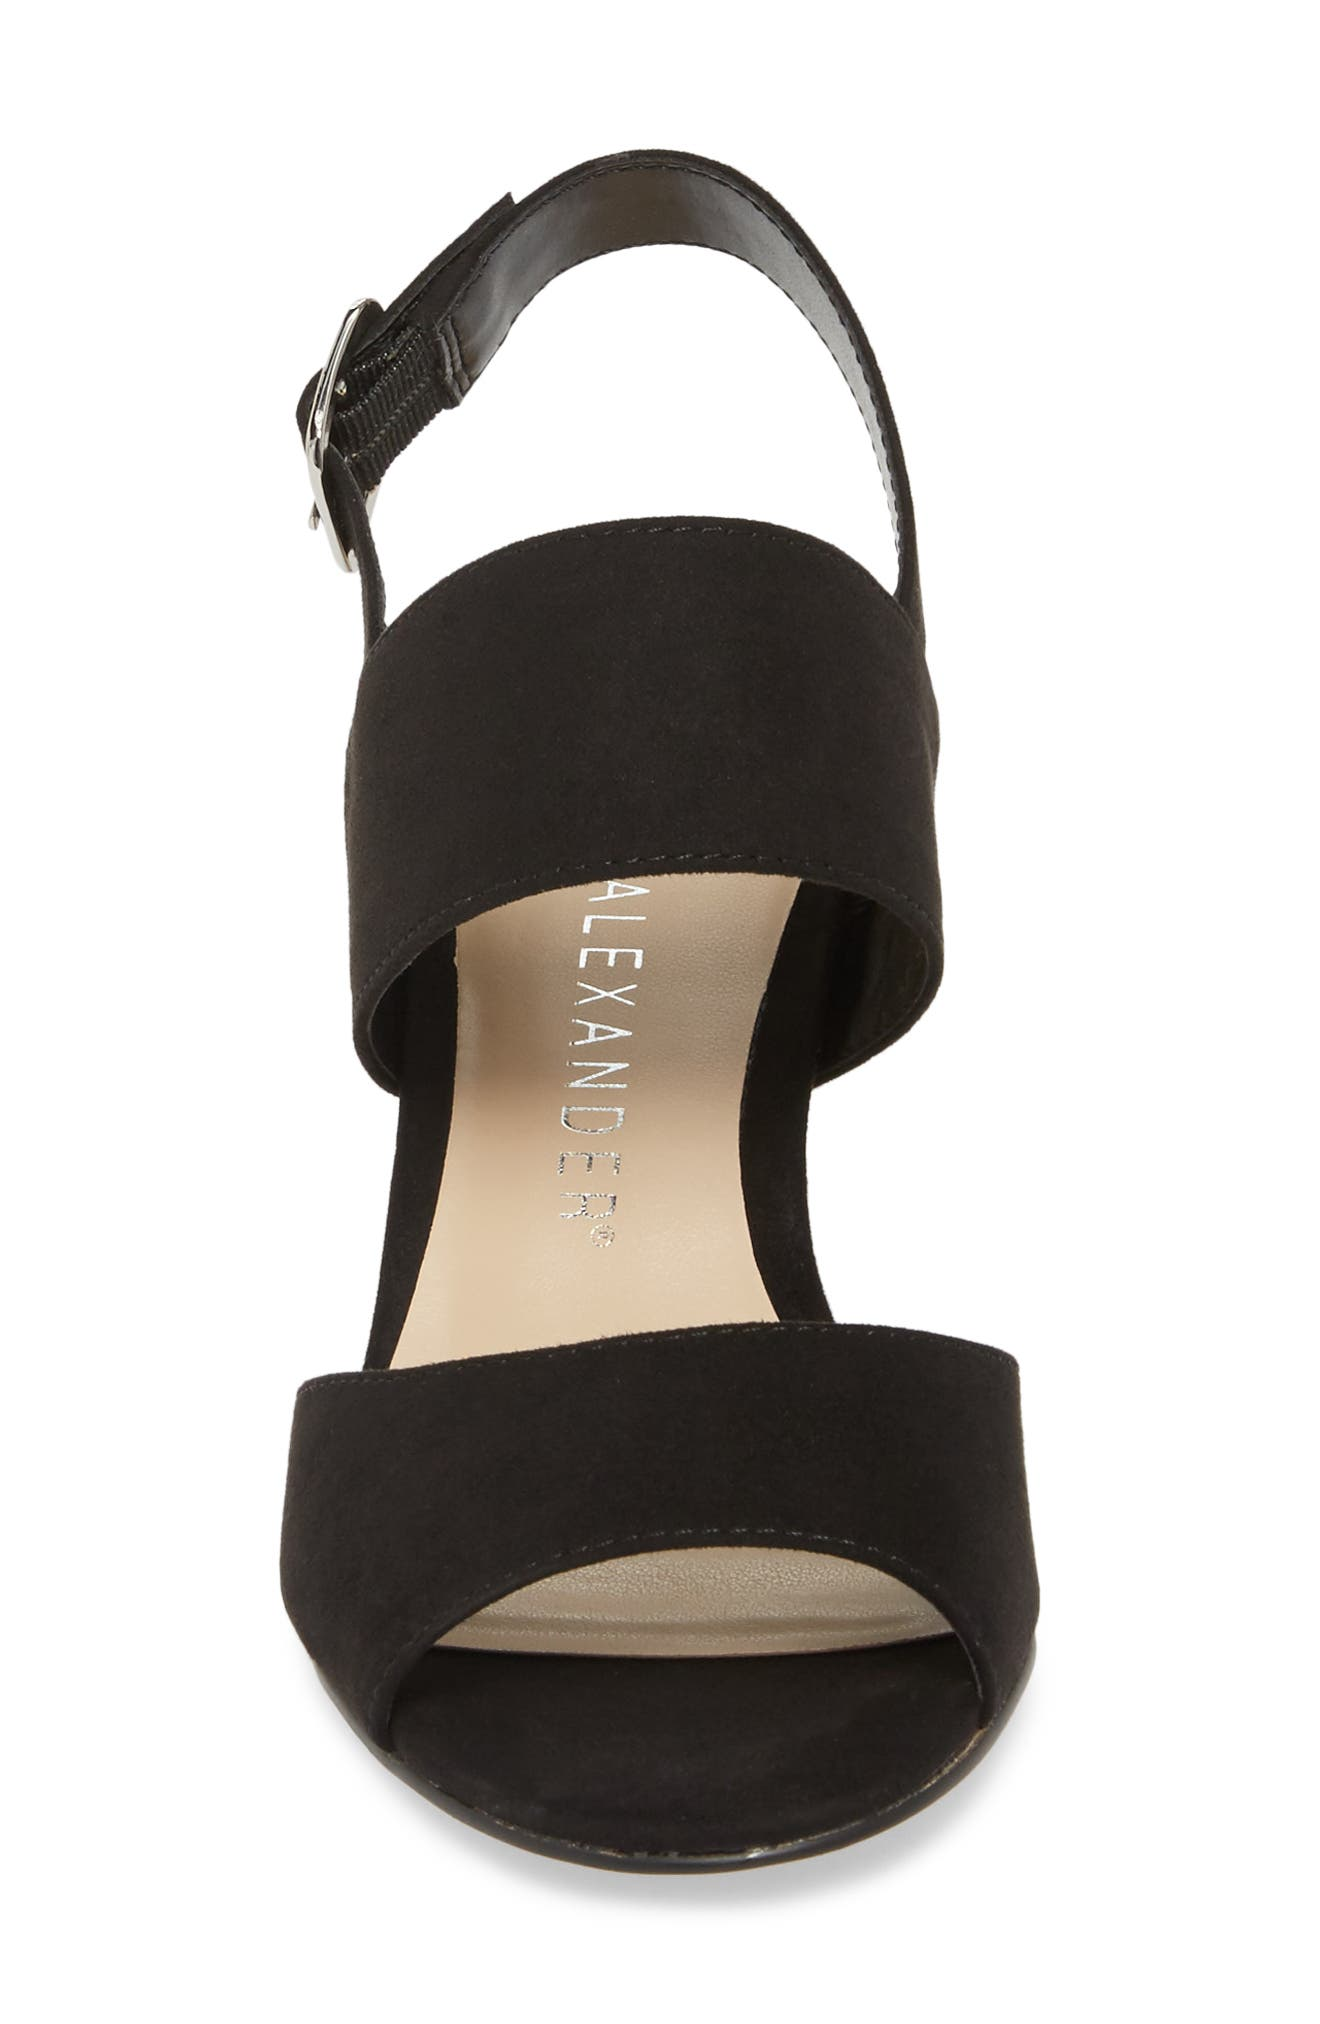 Slayte Wedge Sandal,                             Alternate thumbnail 4, color,                             BLACK FAUX SUEDE